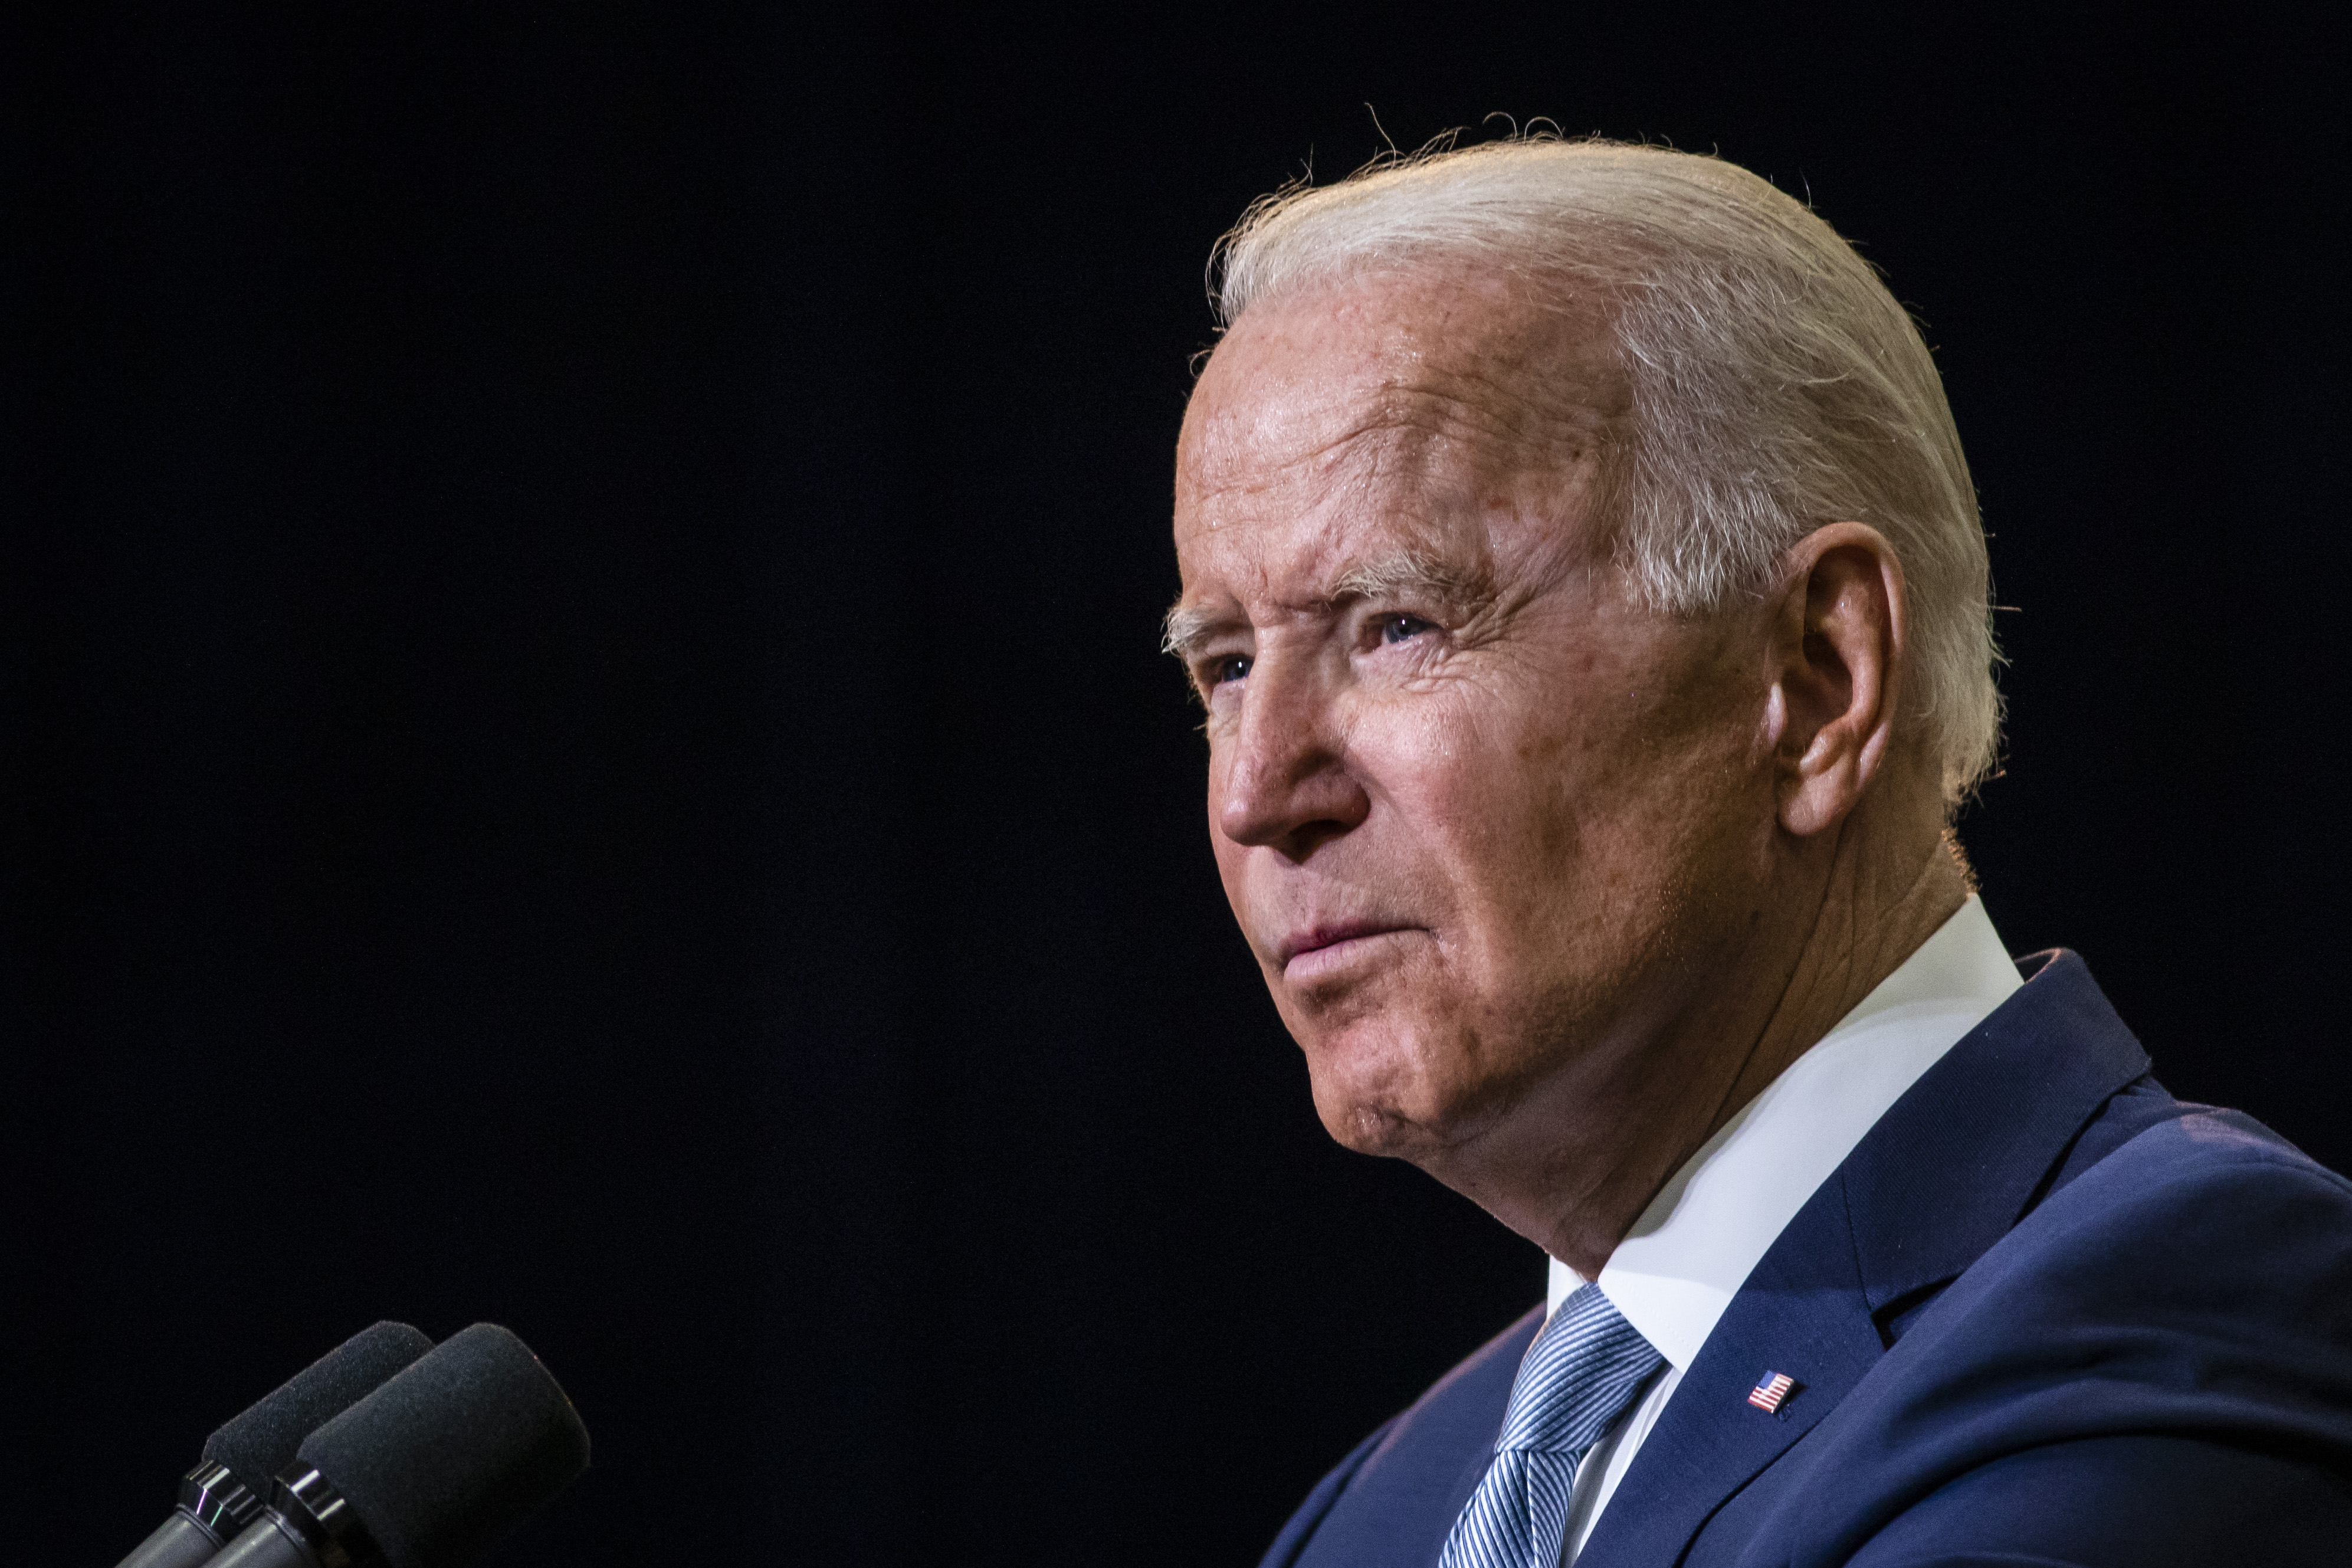 President Joe Biden speaks at McHenry County College in Crystal Lake, Wednesday afternoon, July 7, 2021.